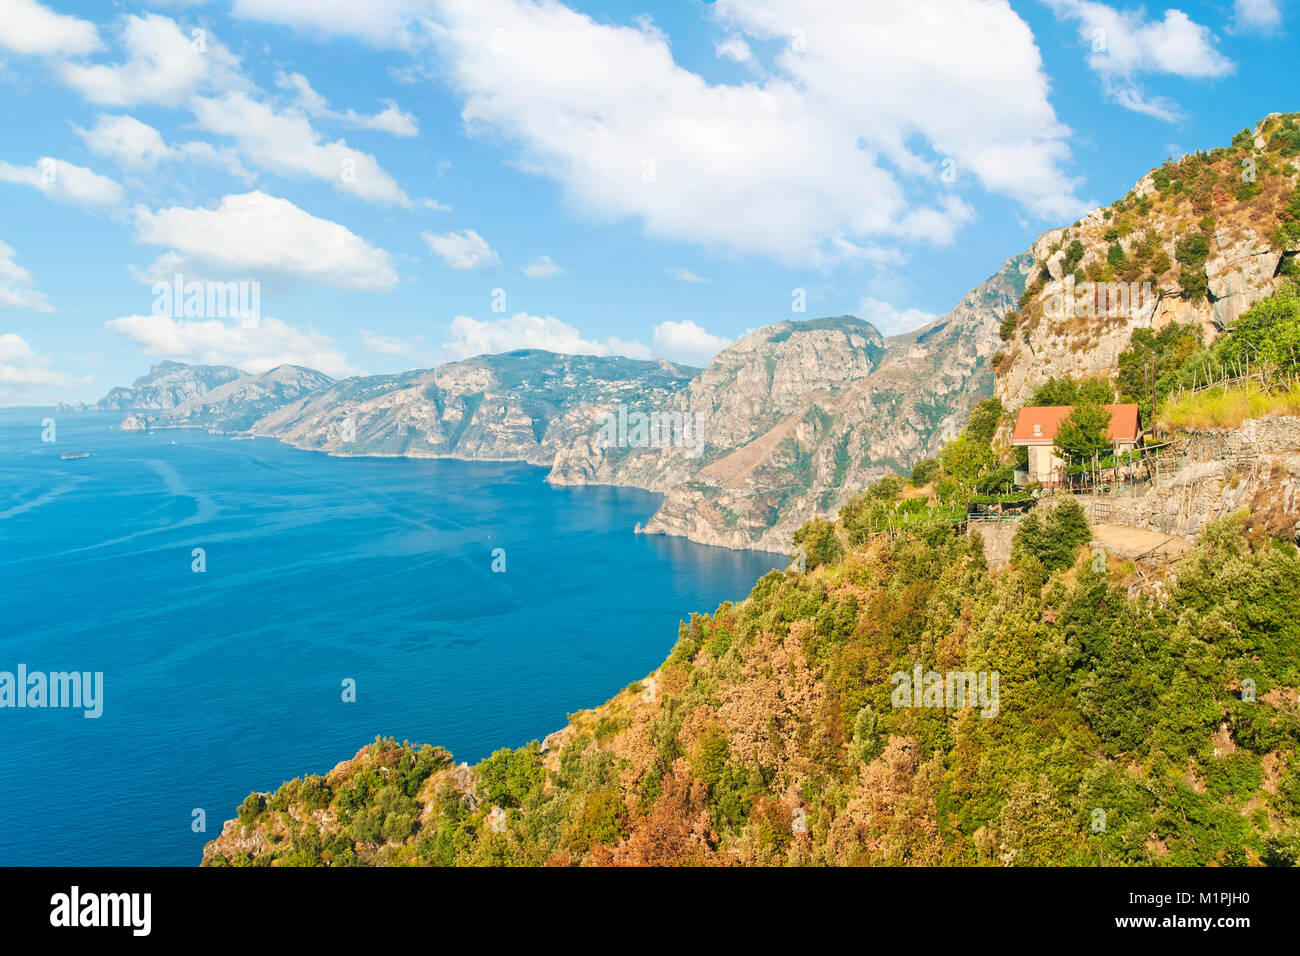 view of small country house on edge of cliff with mountain range at background on Path of Gods hiking track along - Stock Image